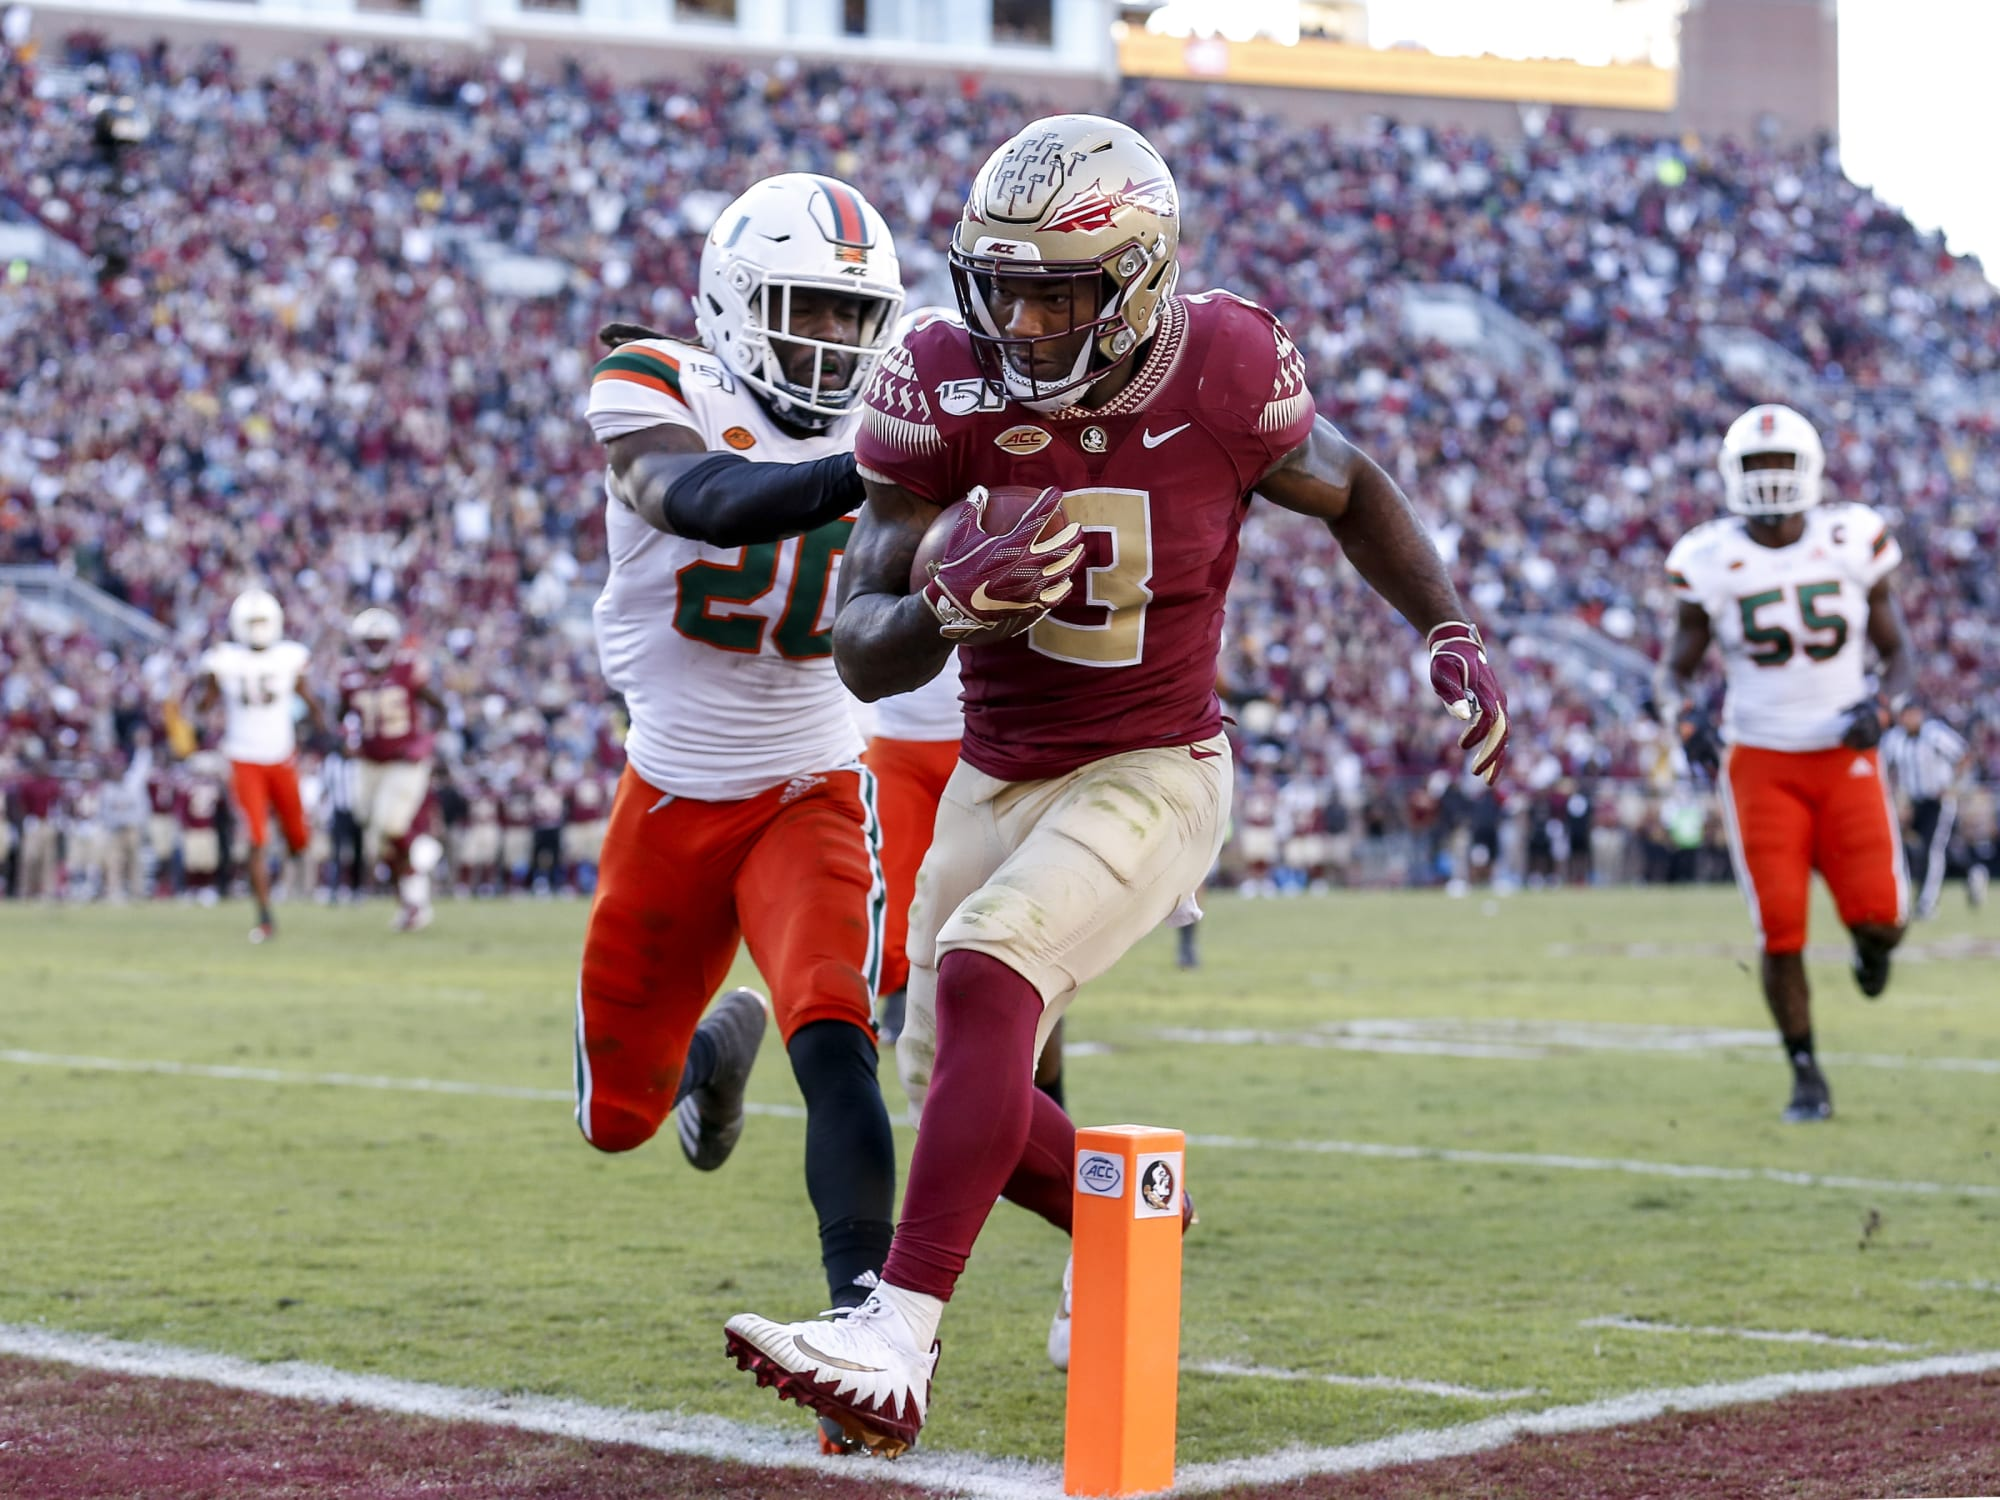 Florida State should opt out of the rest of the season after getting housed by Miami